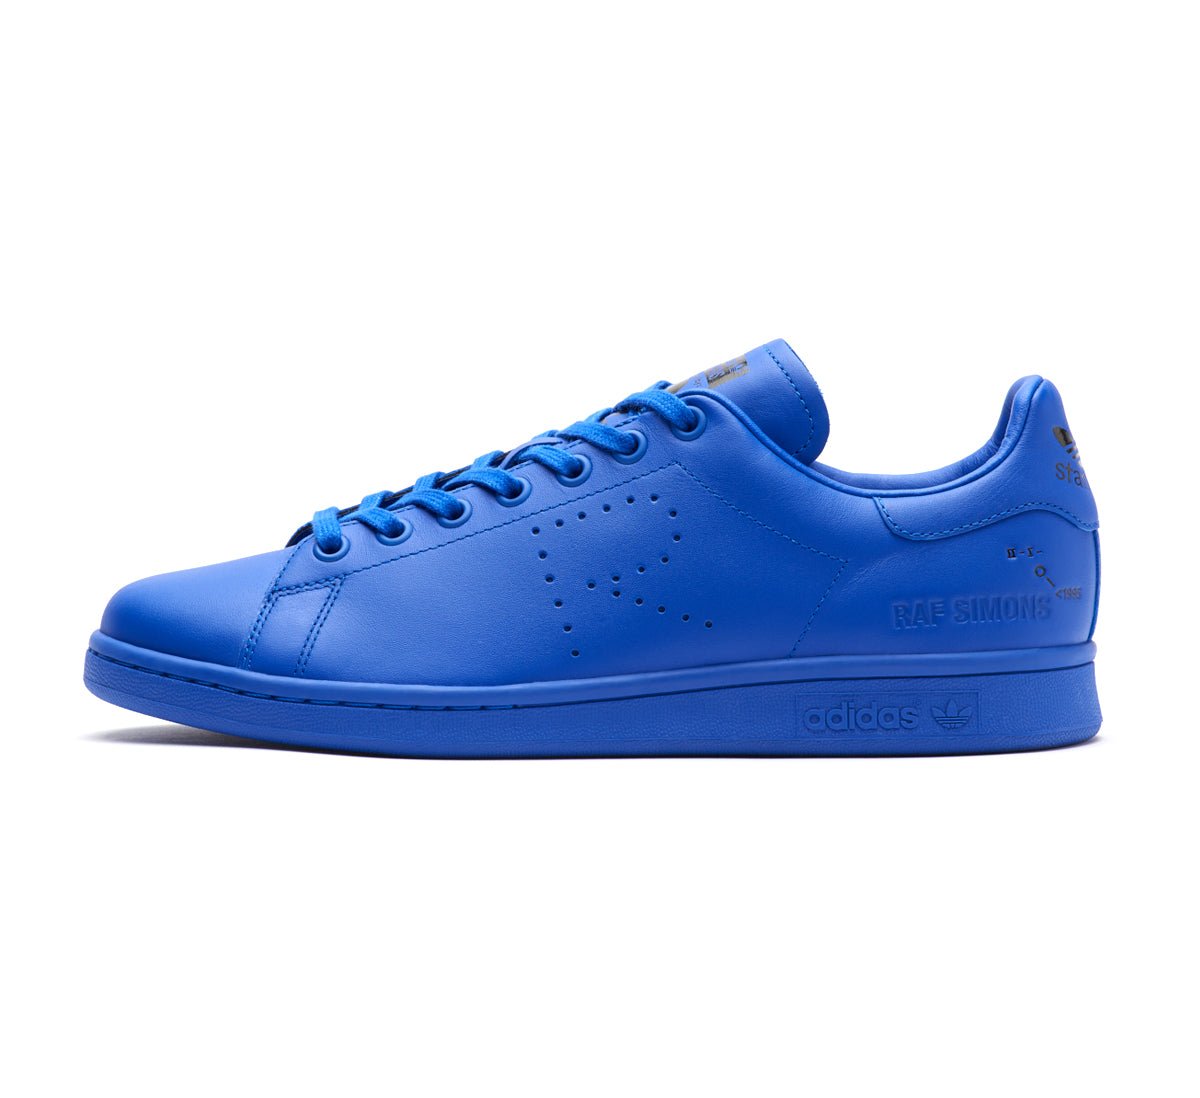 adidas Raf Simons FW18 Stan Smith Electric Blue